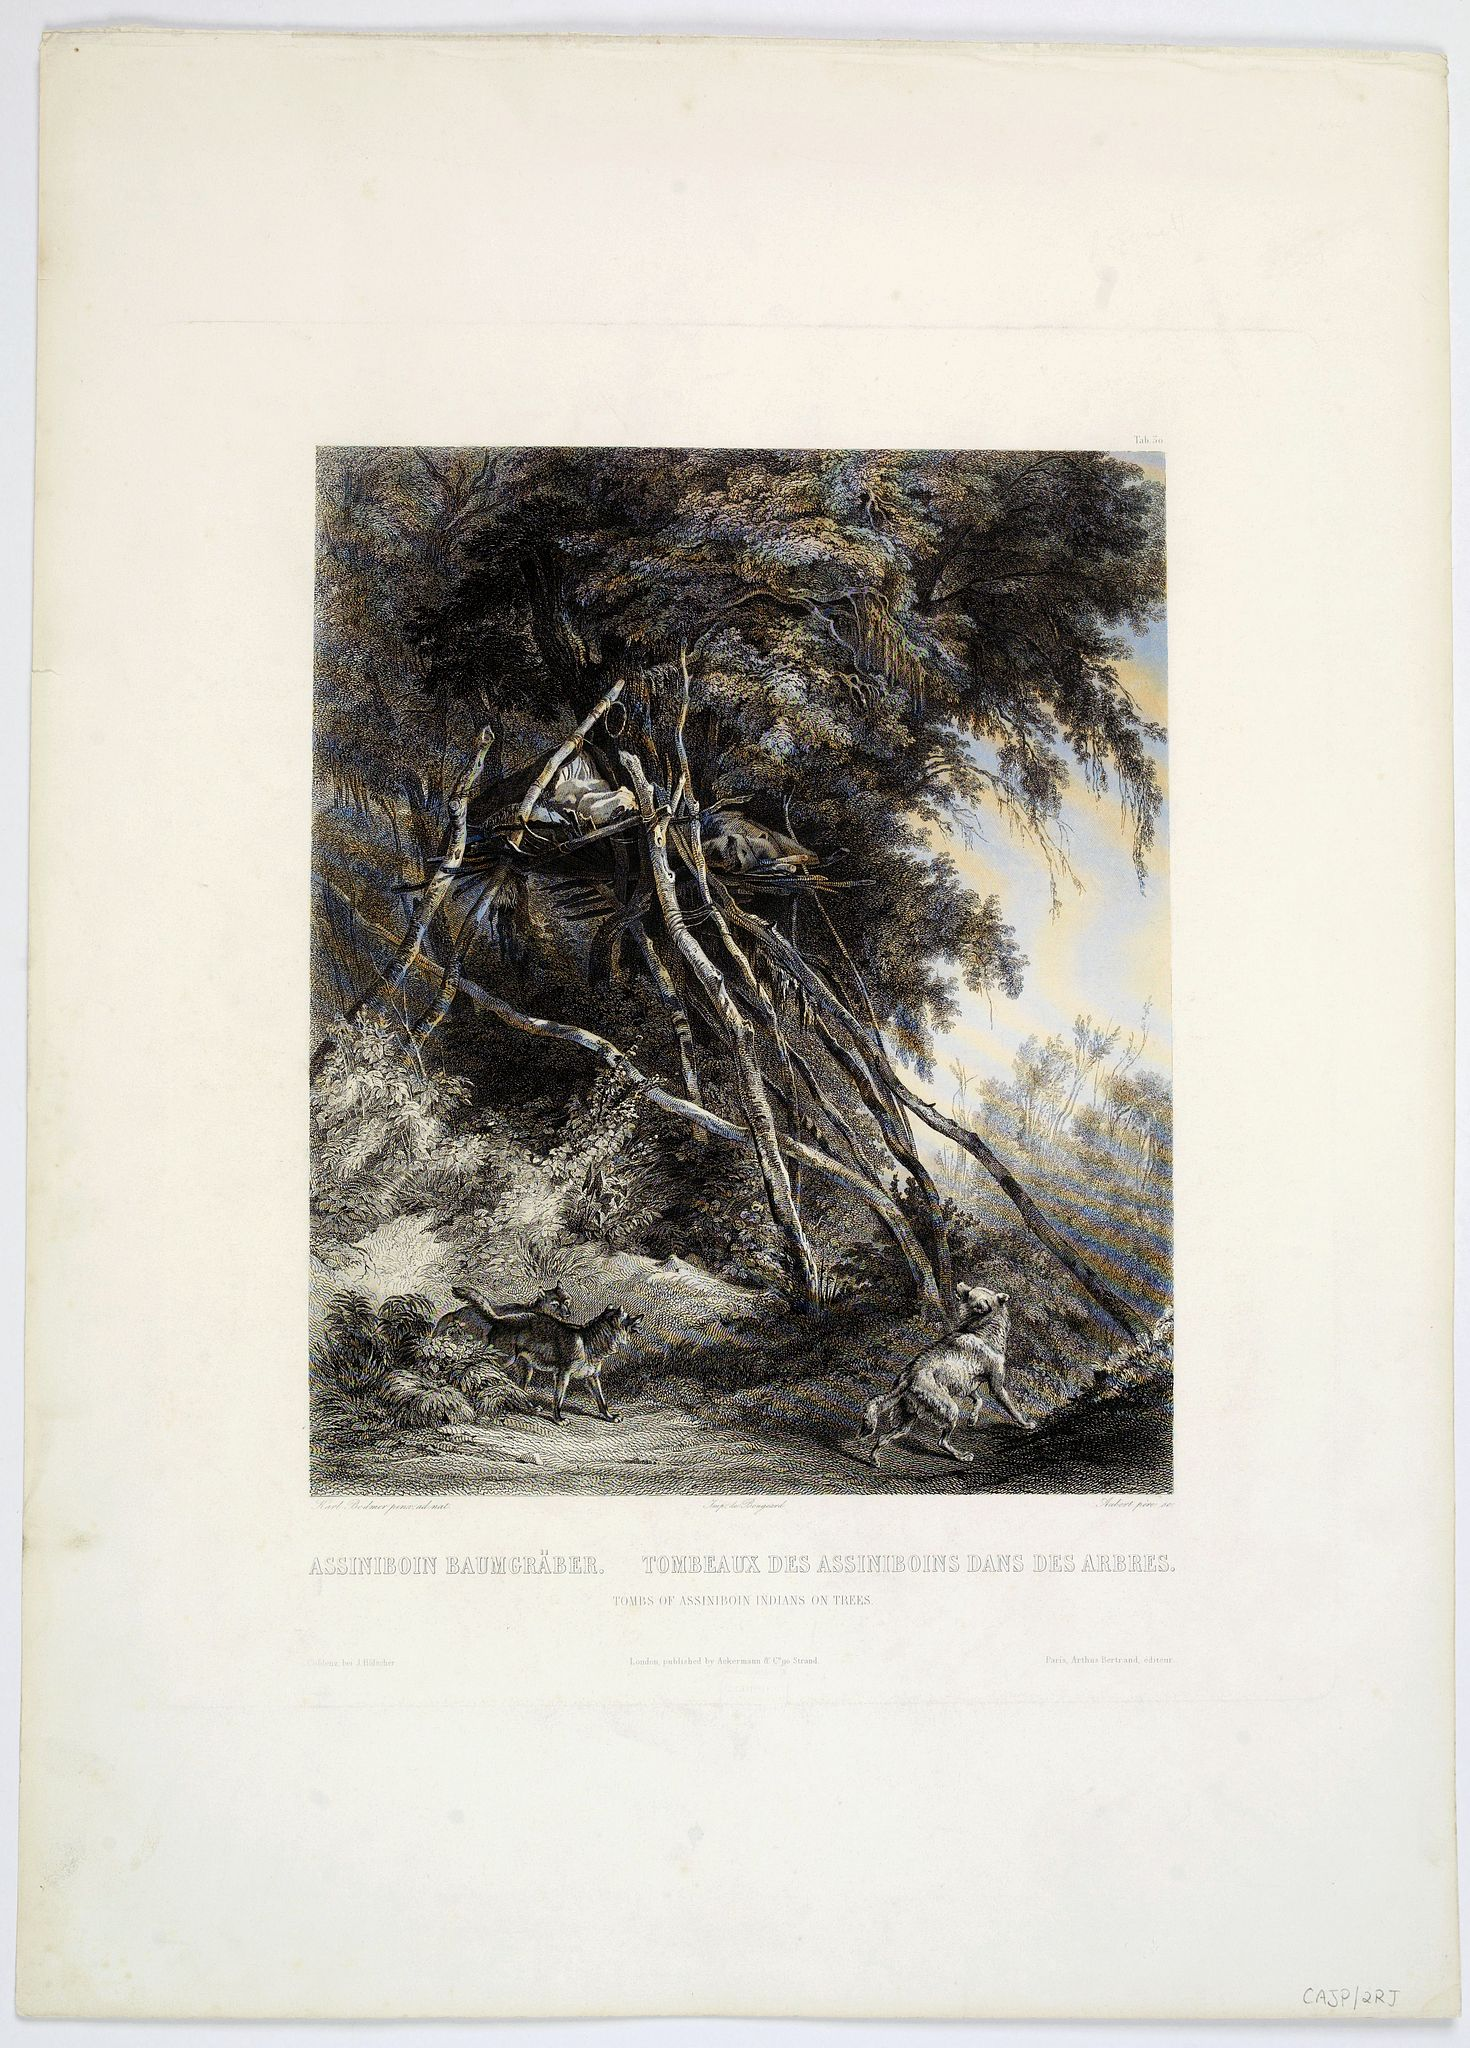 BODMER, Karl. -  Tombs of Assiniboin Indians on Trees.